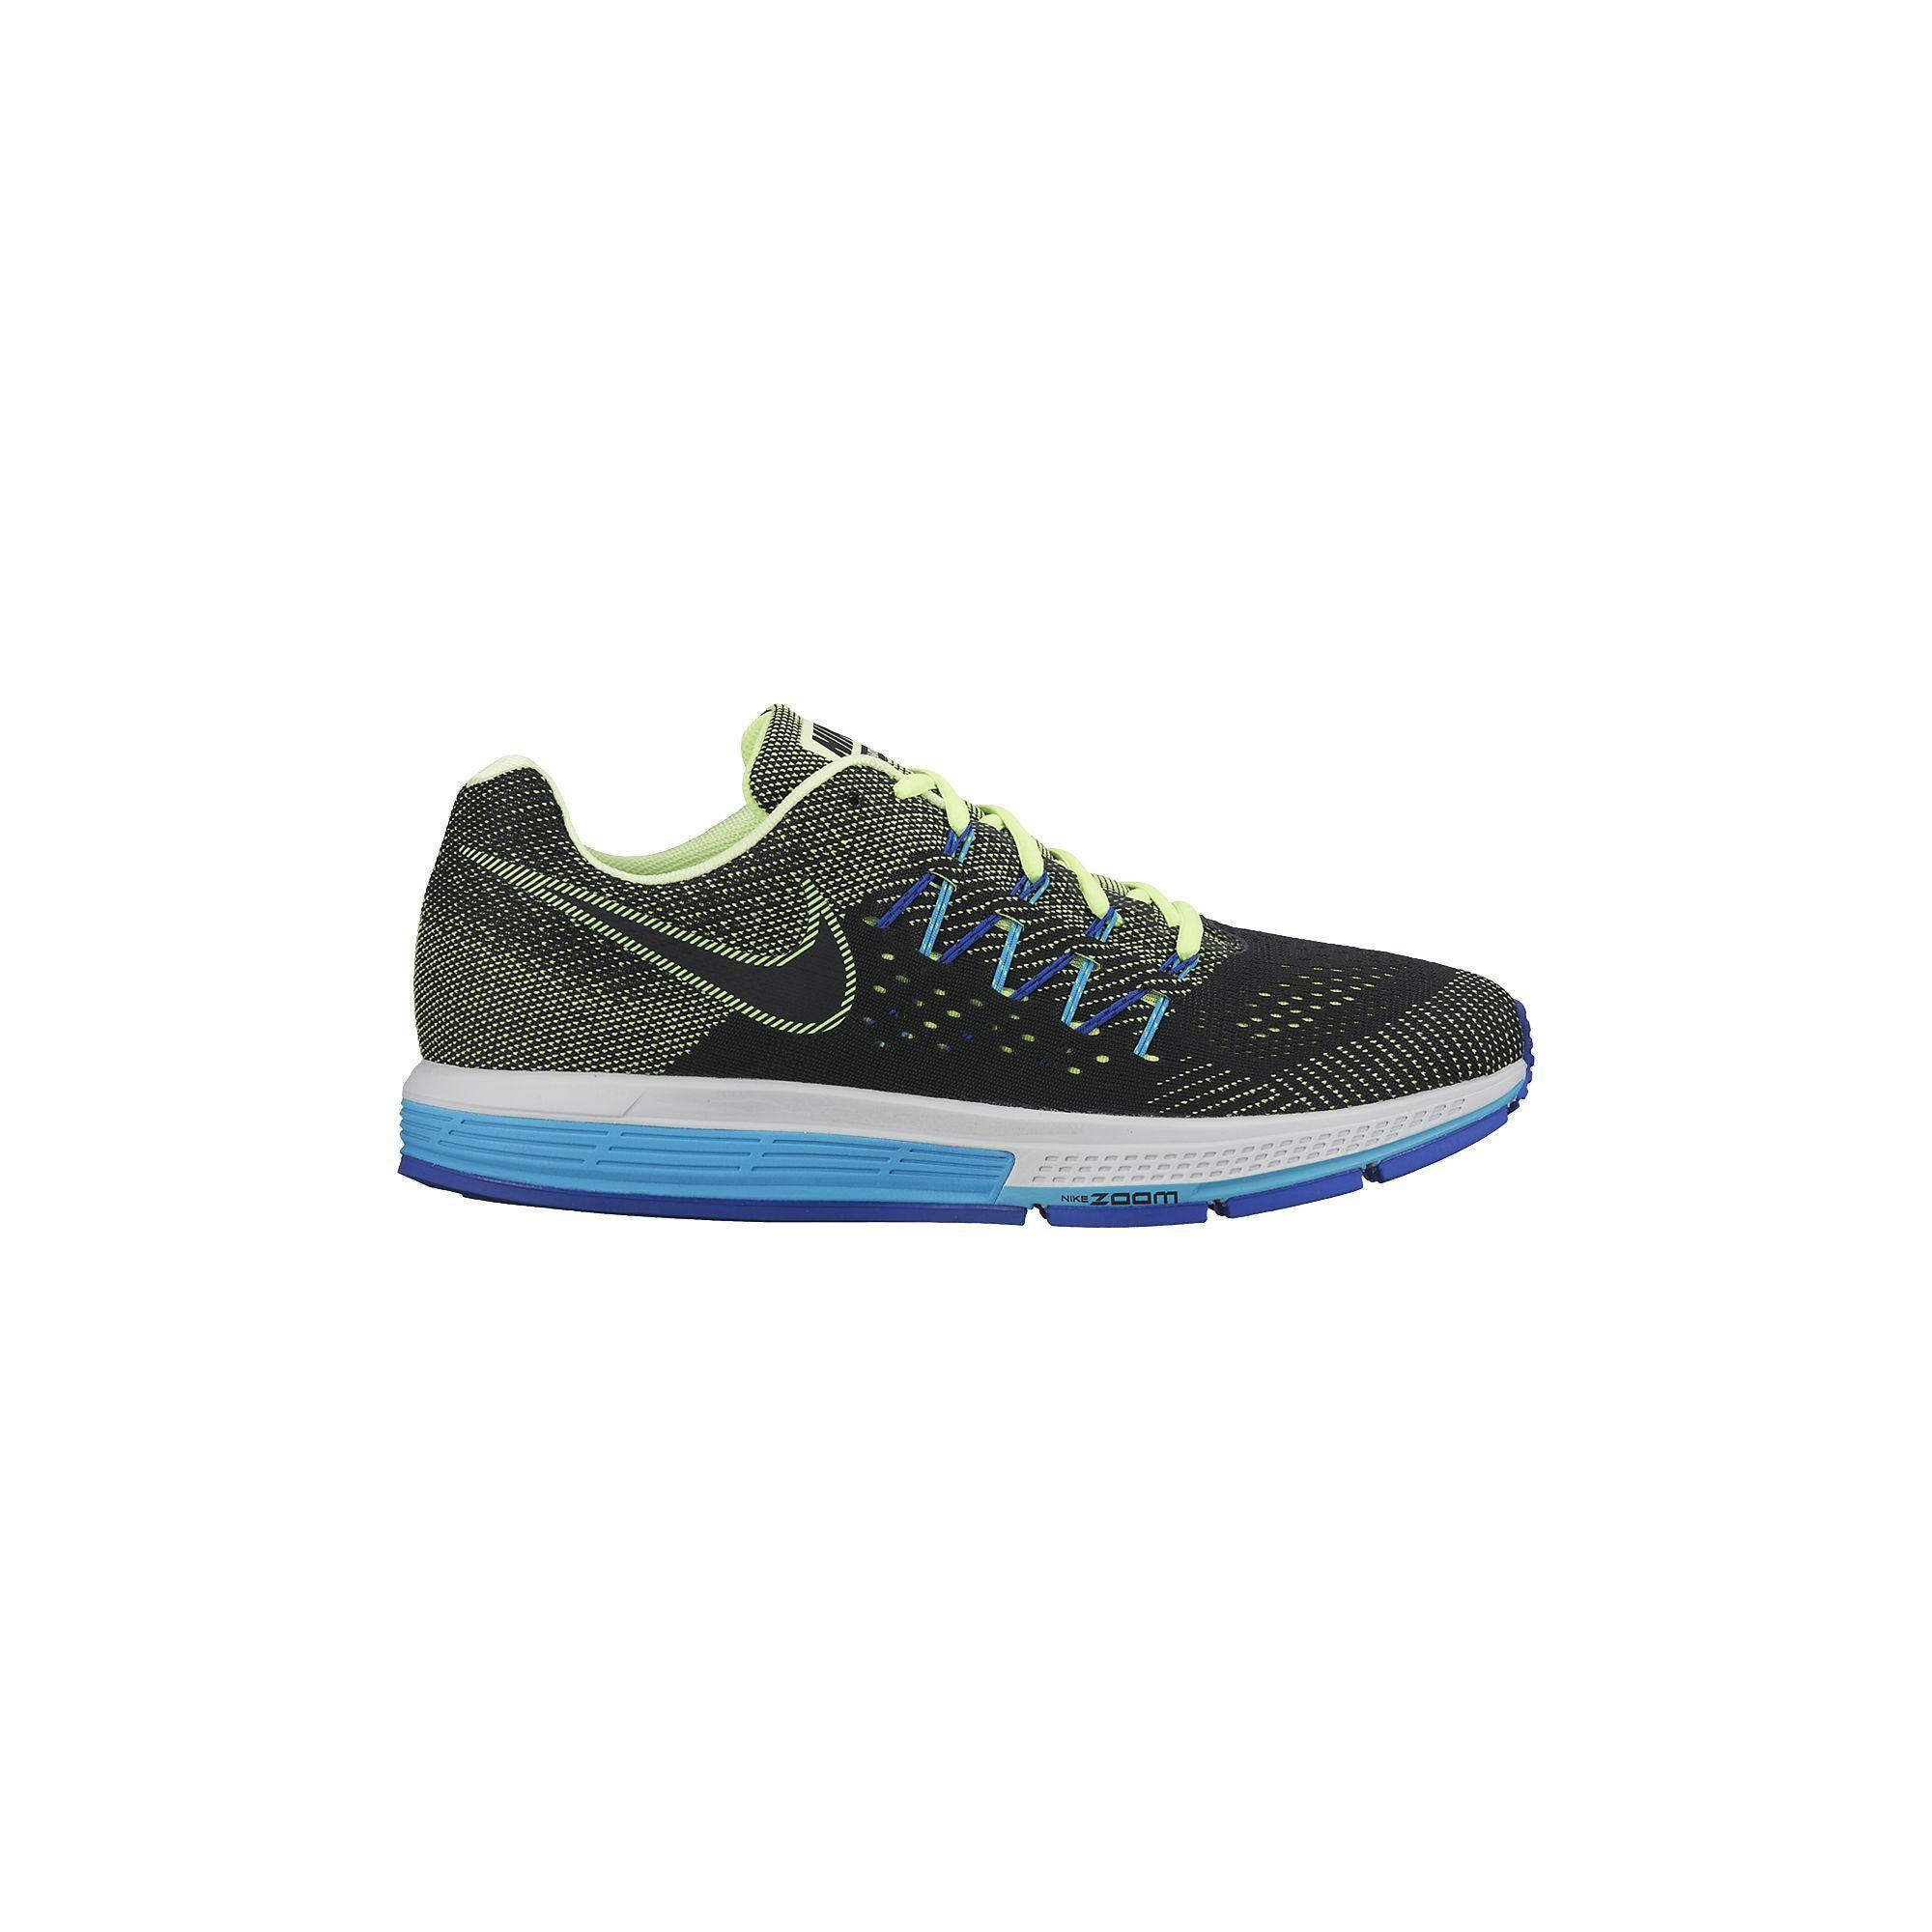 lowest price f7de3 f7091 Men s   Nike Air Zoom Vomero 10   Fleet Feet